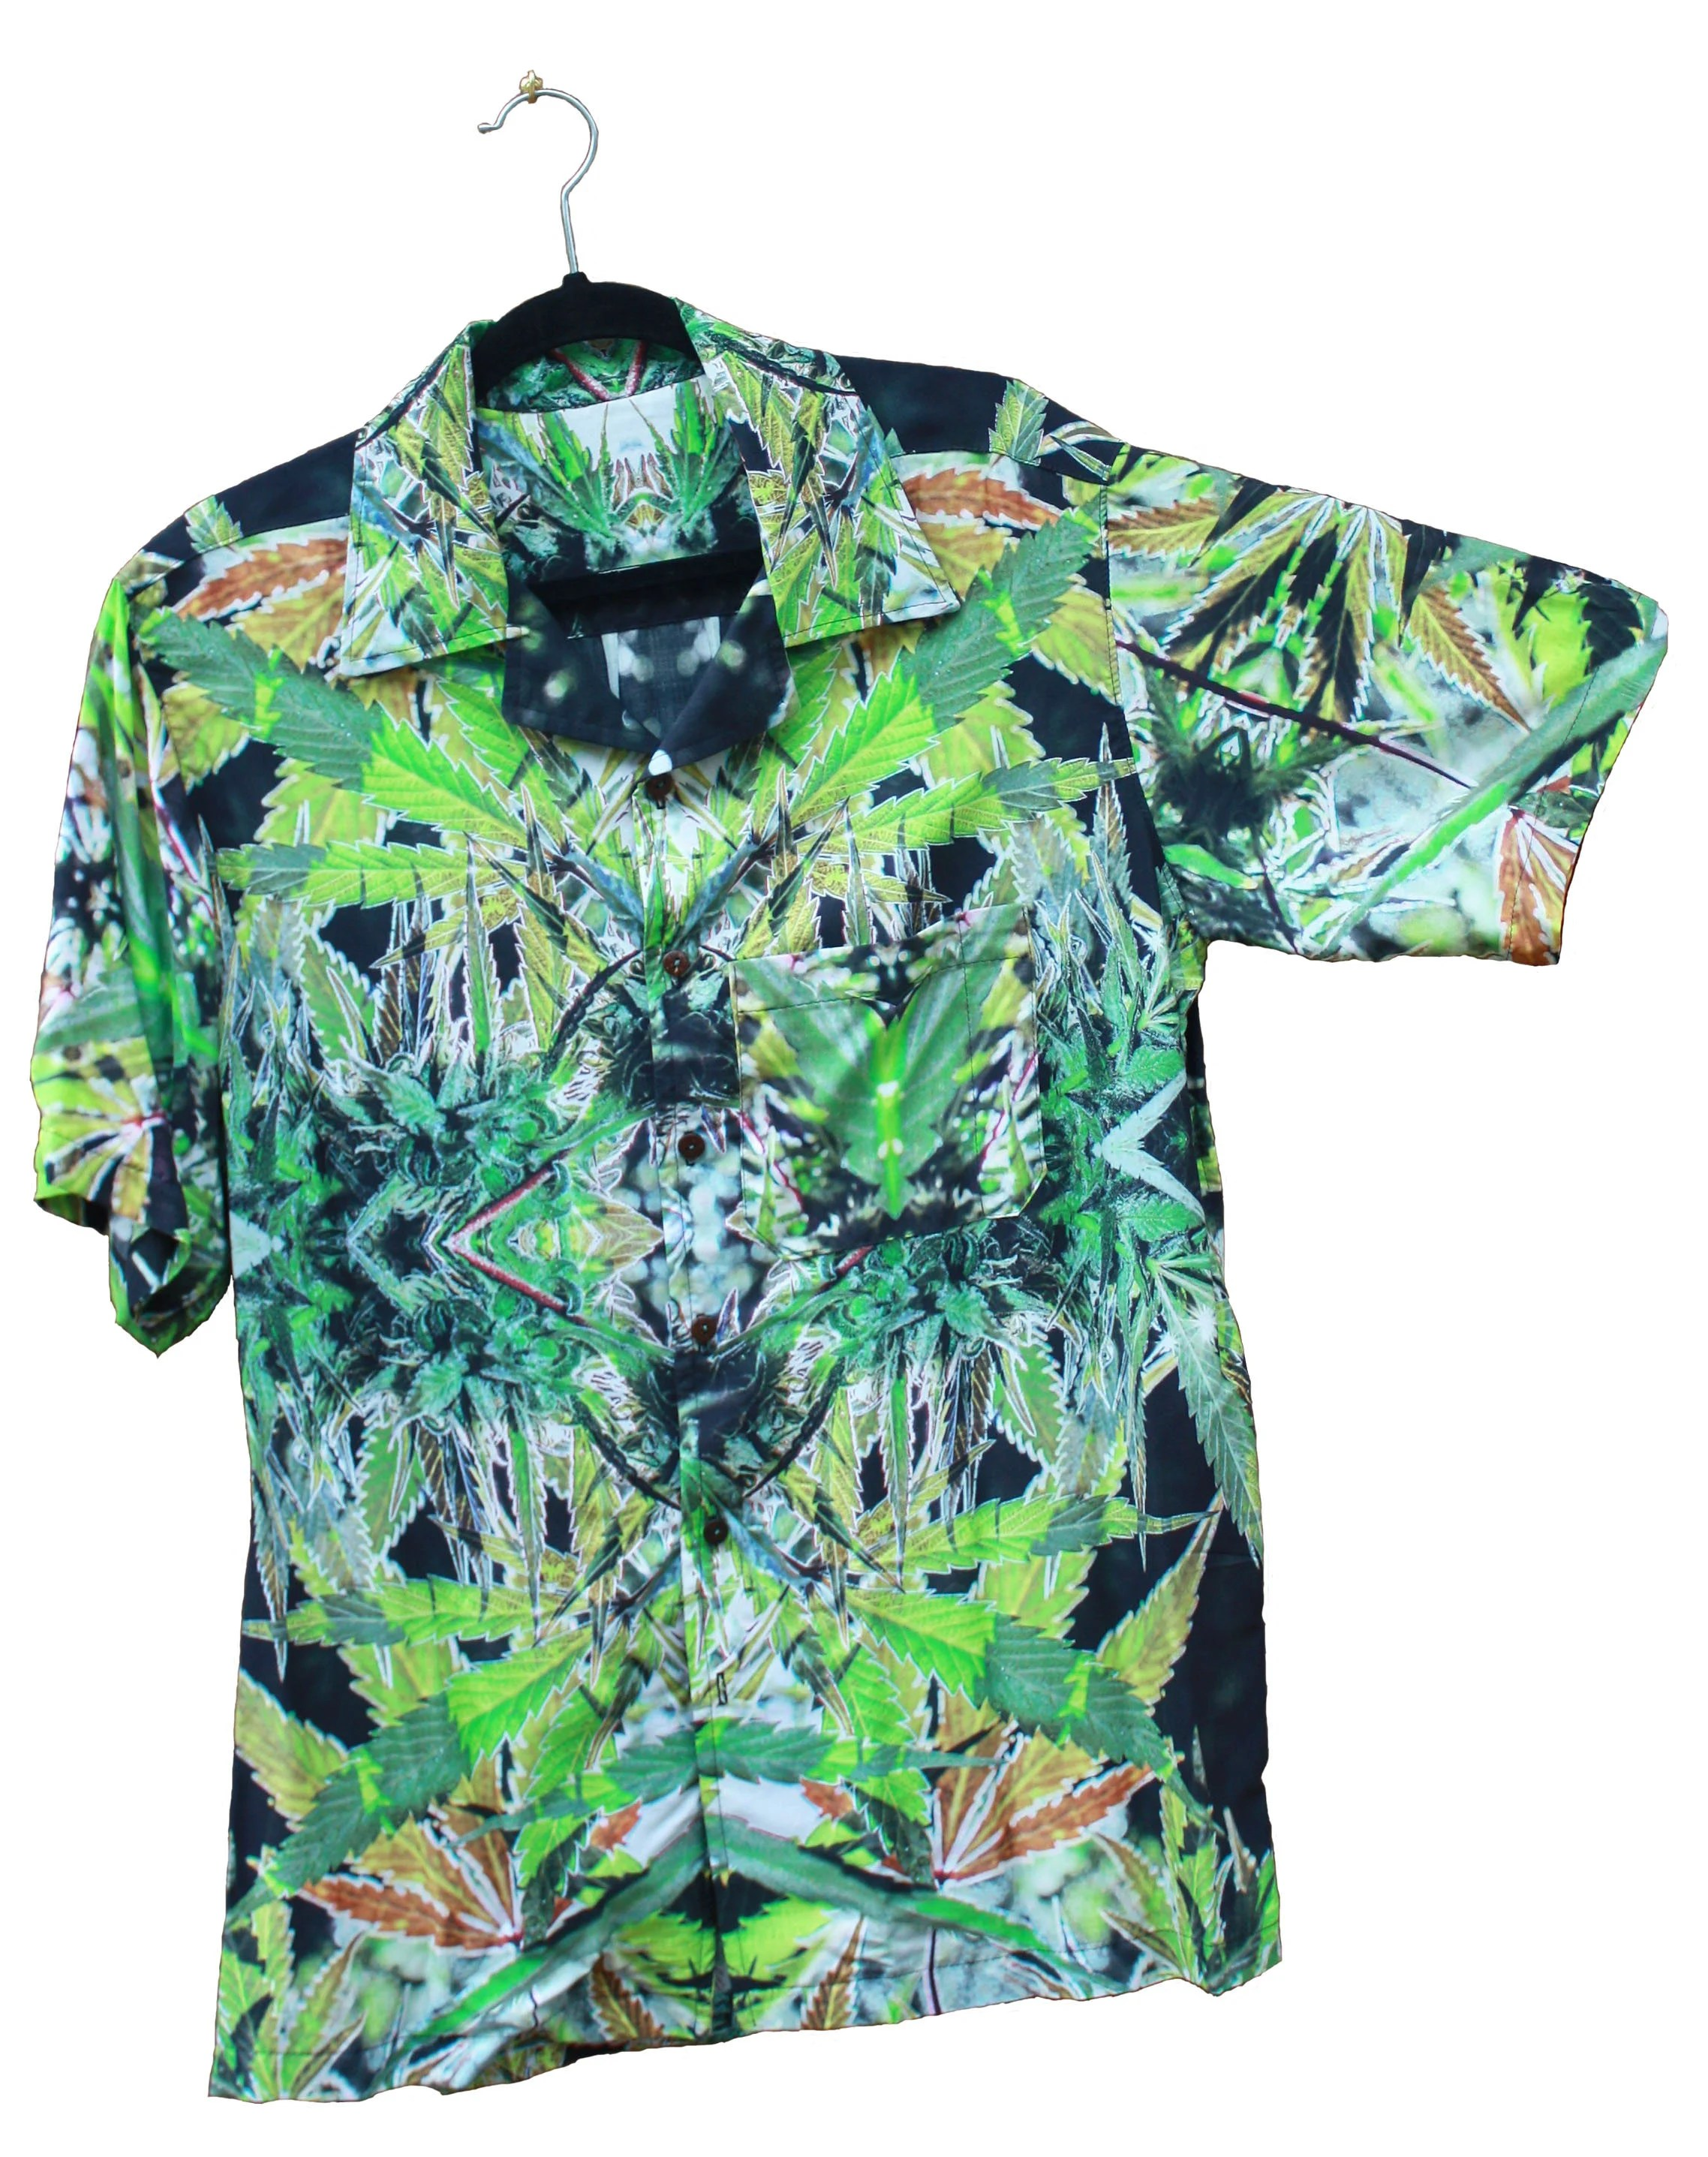 Weed Bettwäsche Mens Hawaiian Shirt Hippy Shirt In Blueberry Marijuana Print Festival Shirt Resort Wear Mens Beach Wedding Shirt Cannabis Shirt Resort Shirt